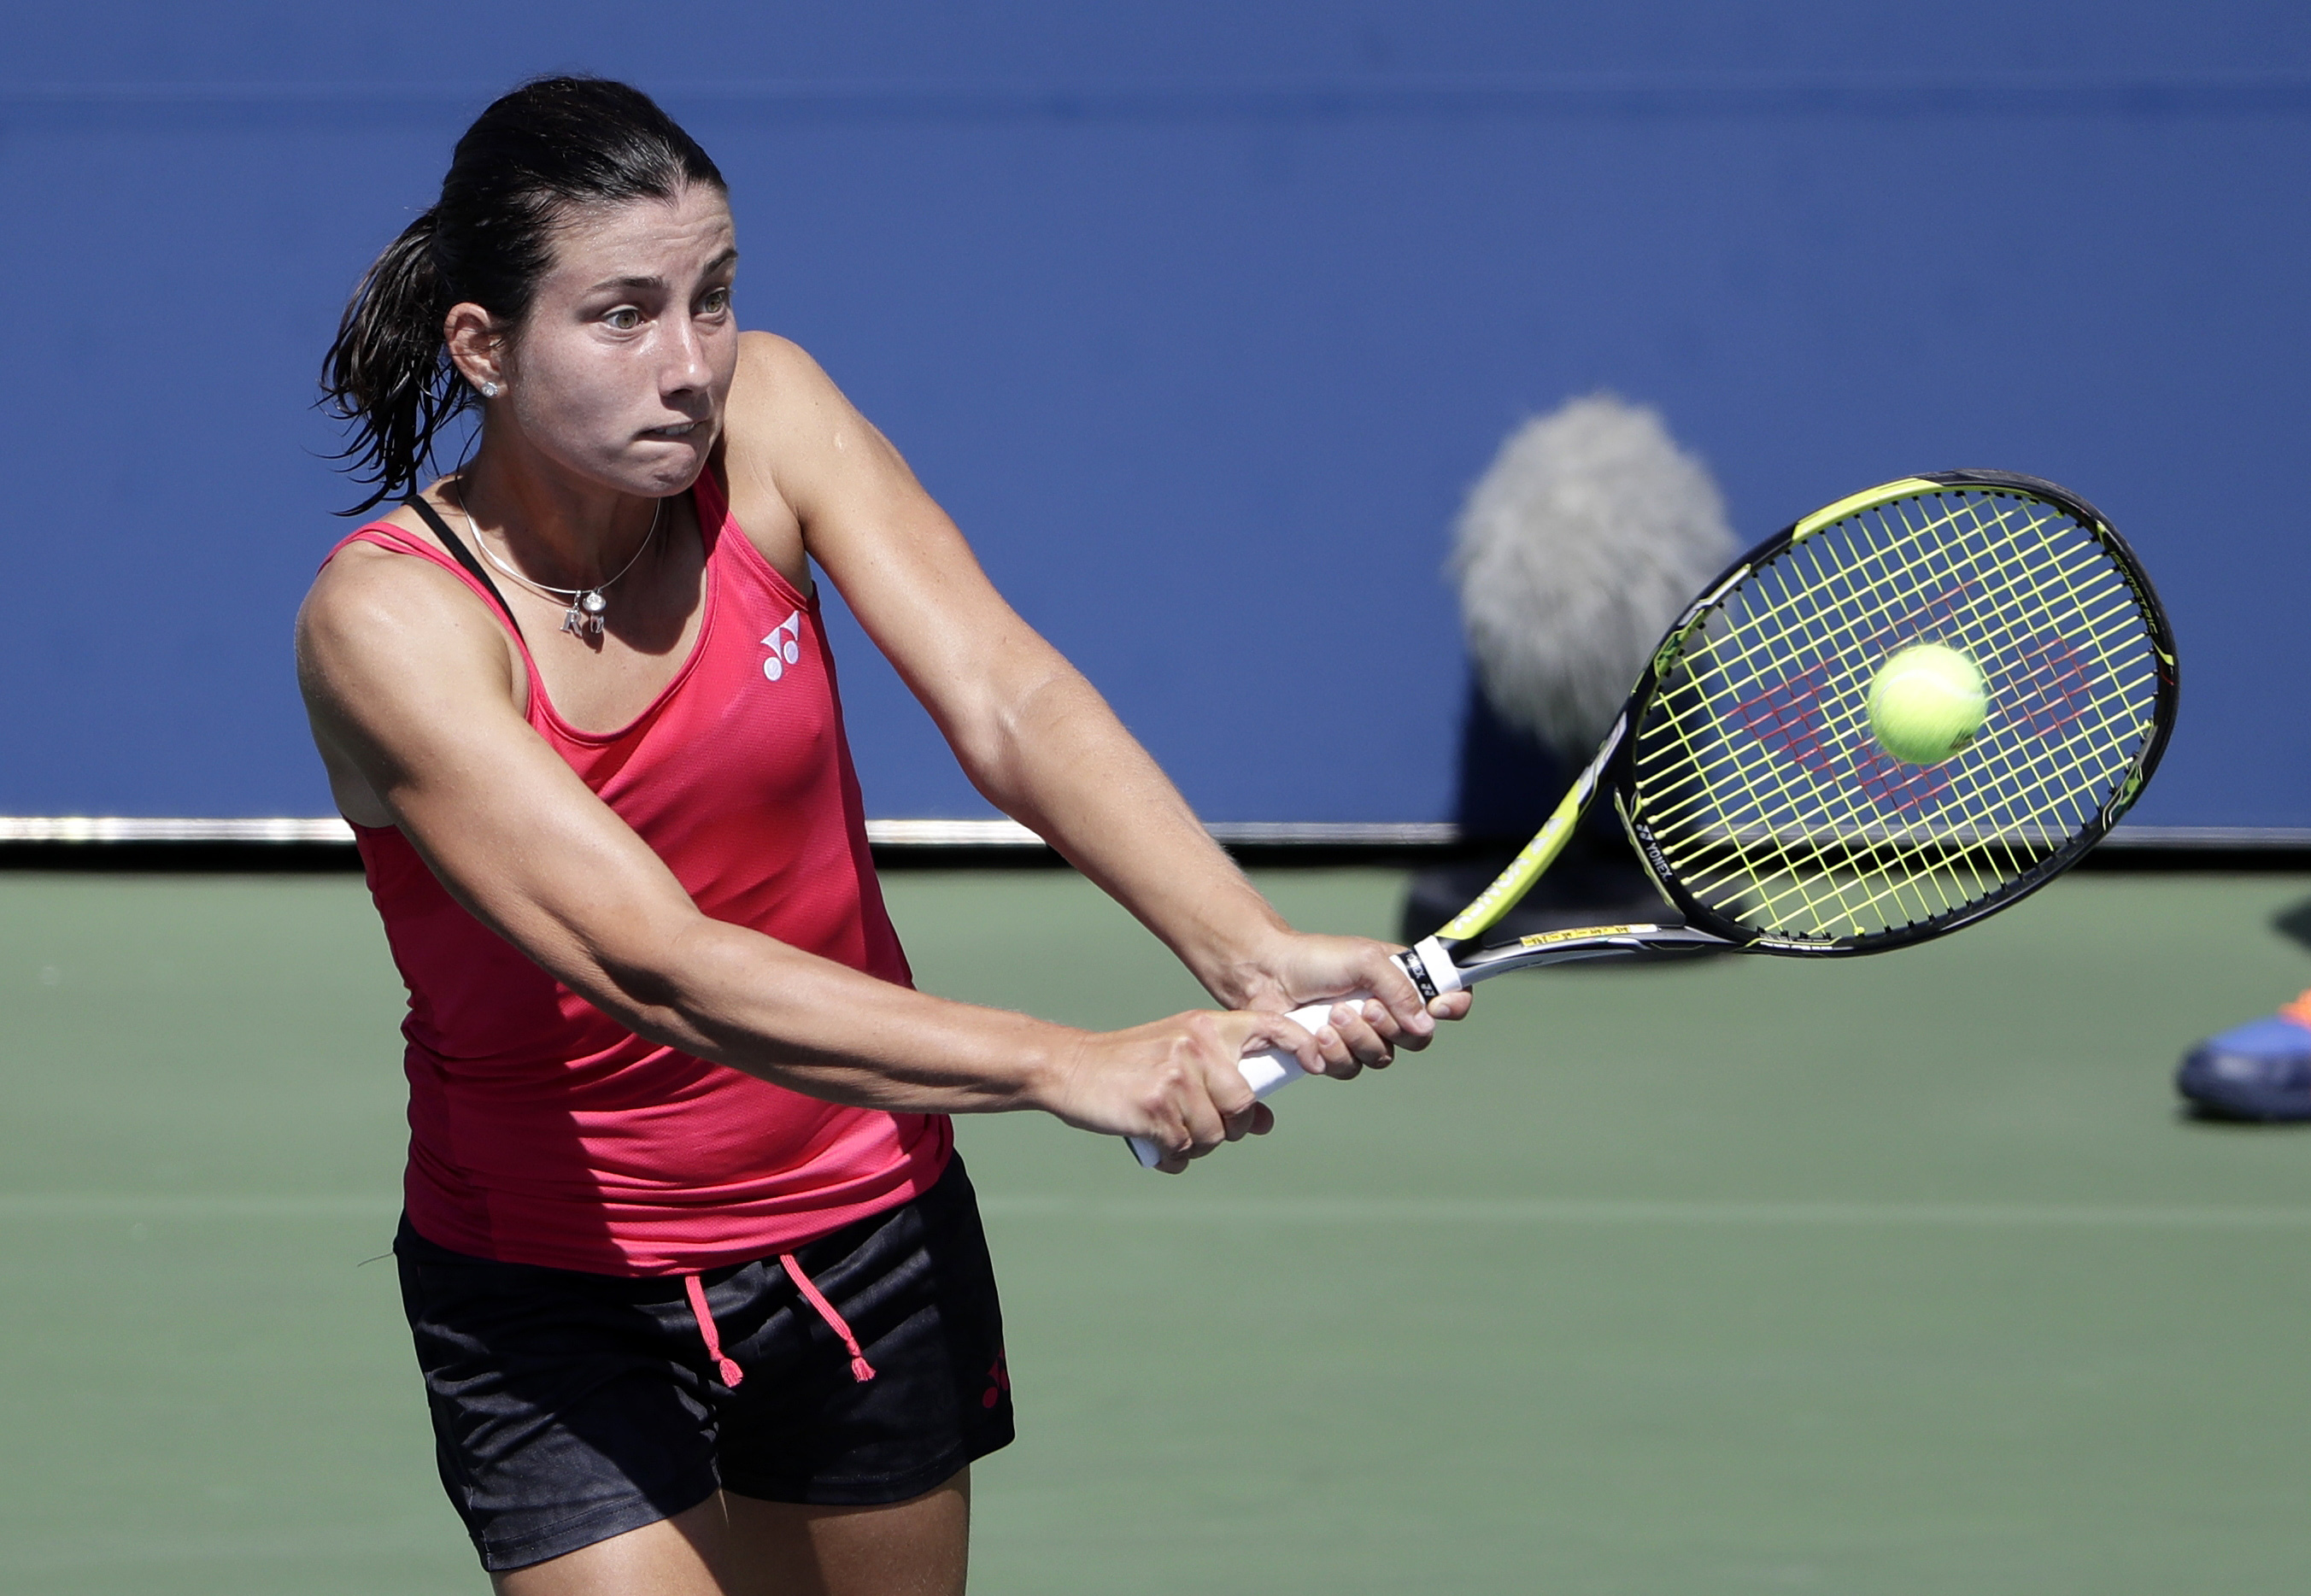 Anastasija Sevastova, of Latvia, returns a shot to Kateryna Bondarenko, of Ukraine, during the third round of the U.S. Open tennis tournament, Friday, Sept. 2, 2016, in New York. (AP Photo/Seth Wenig)